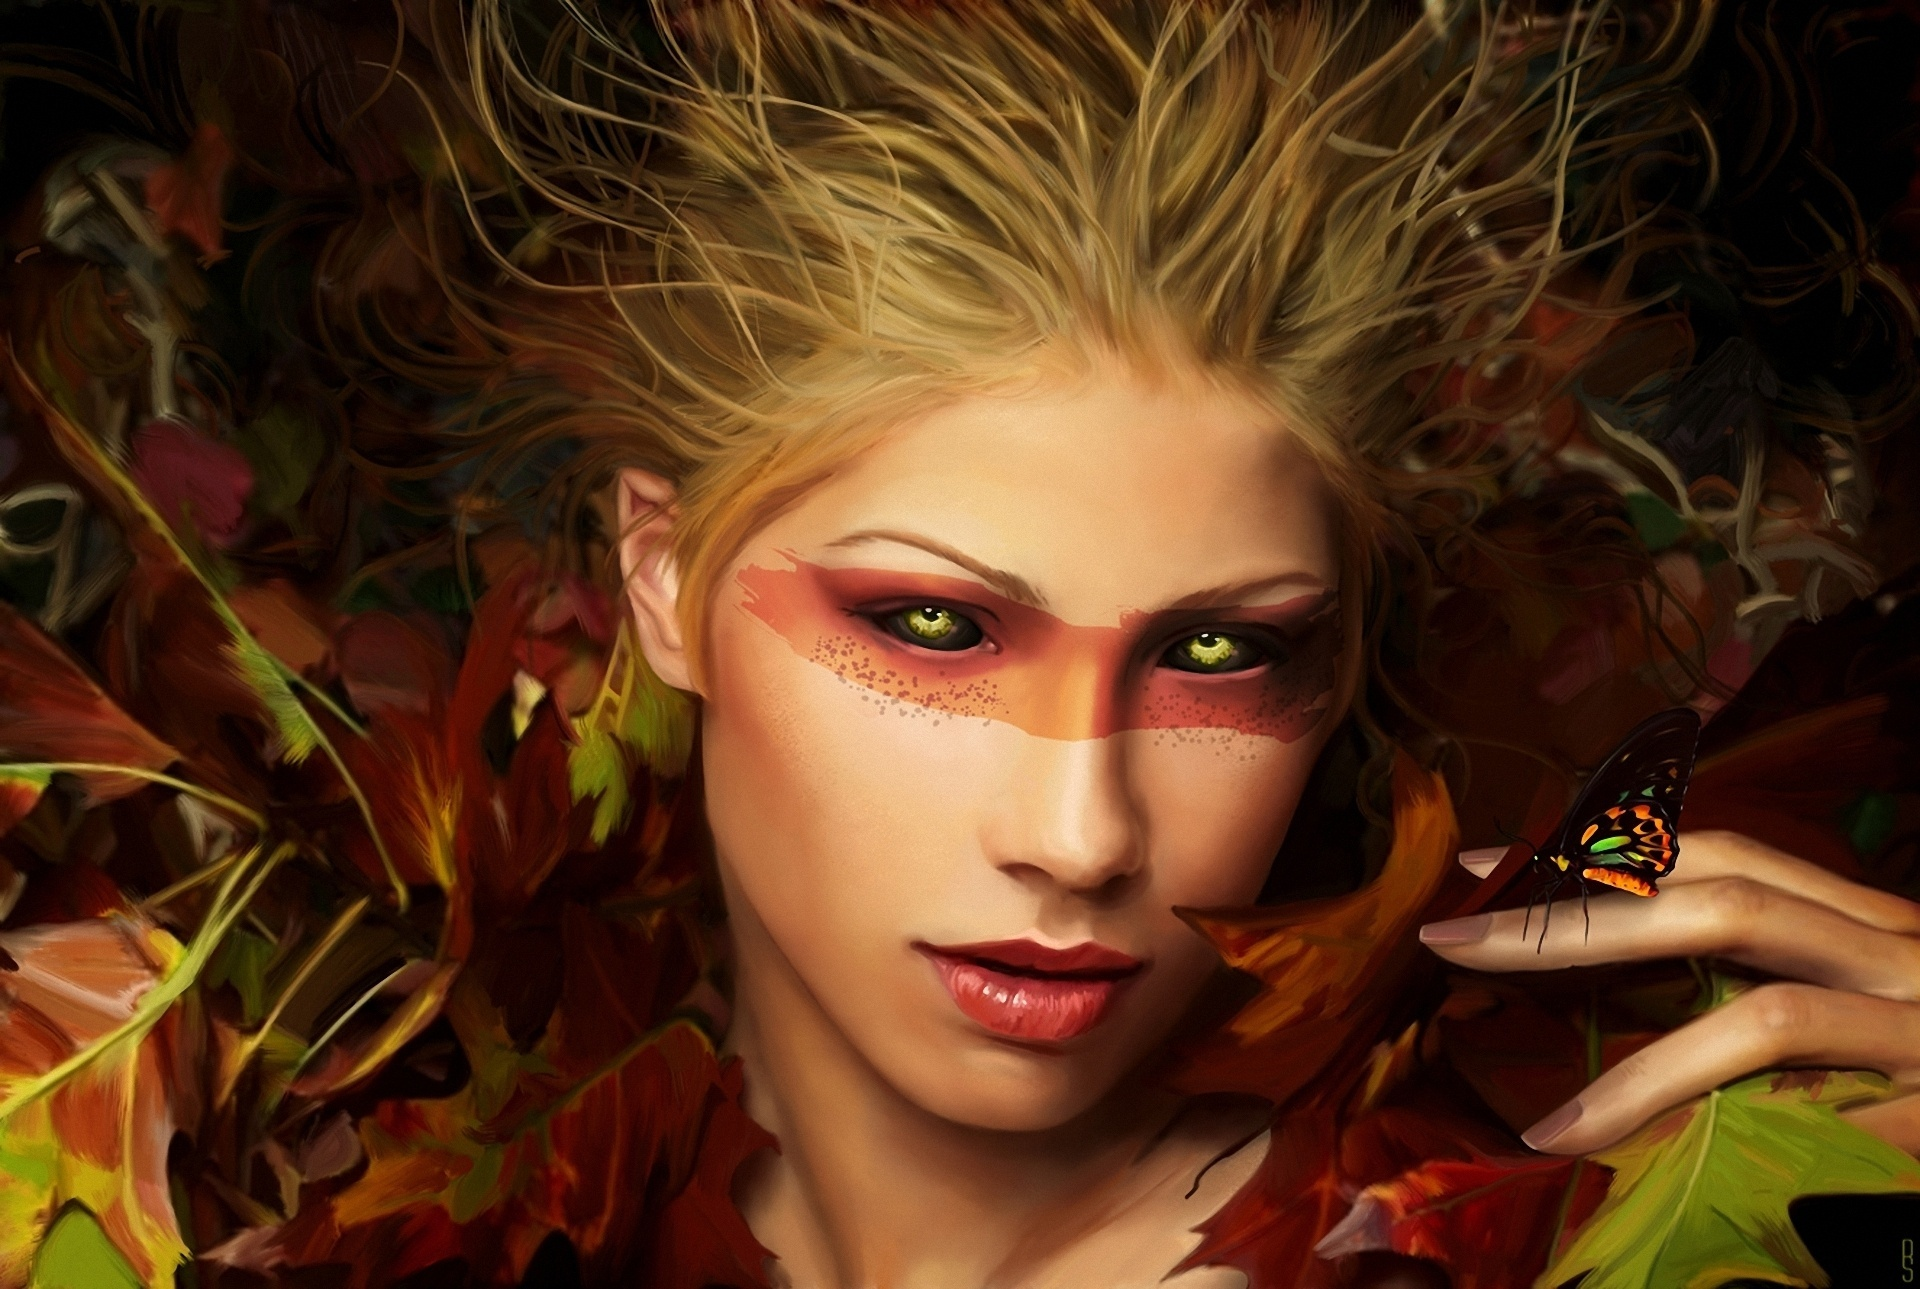 Fall Masquerade Fairies Wallpapers Women Full Hd Wallpaper And Background 1920x1289 Id 310068